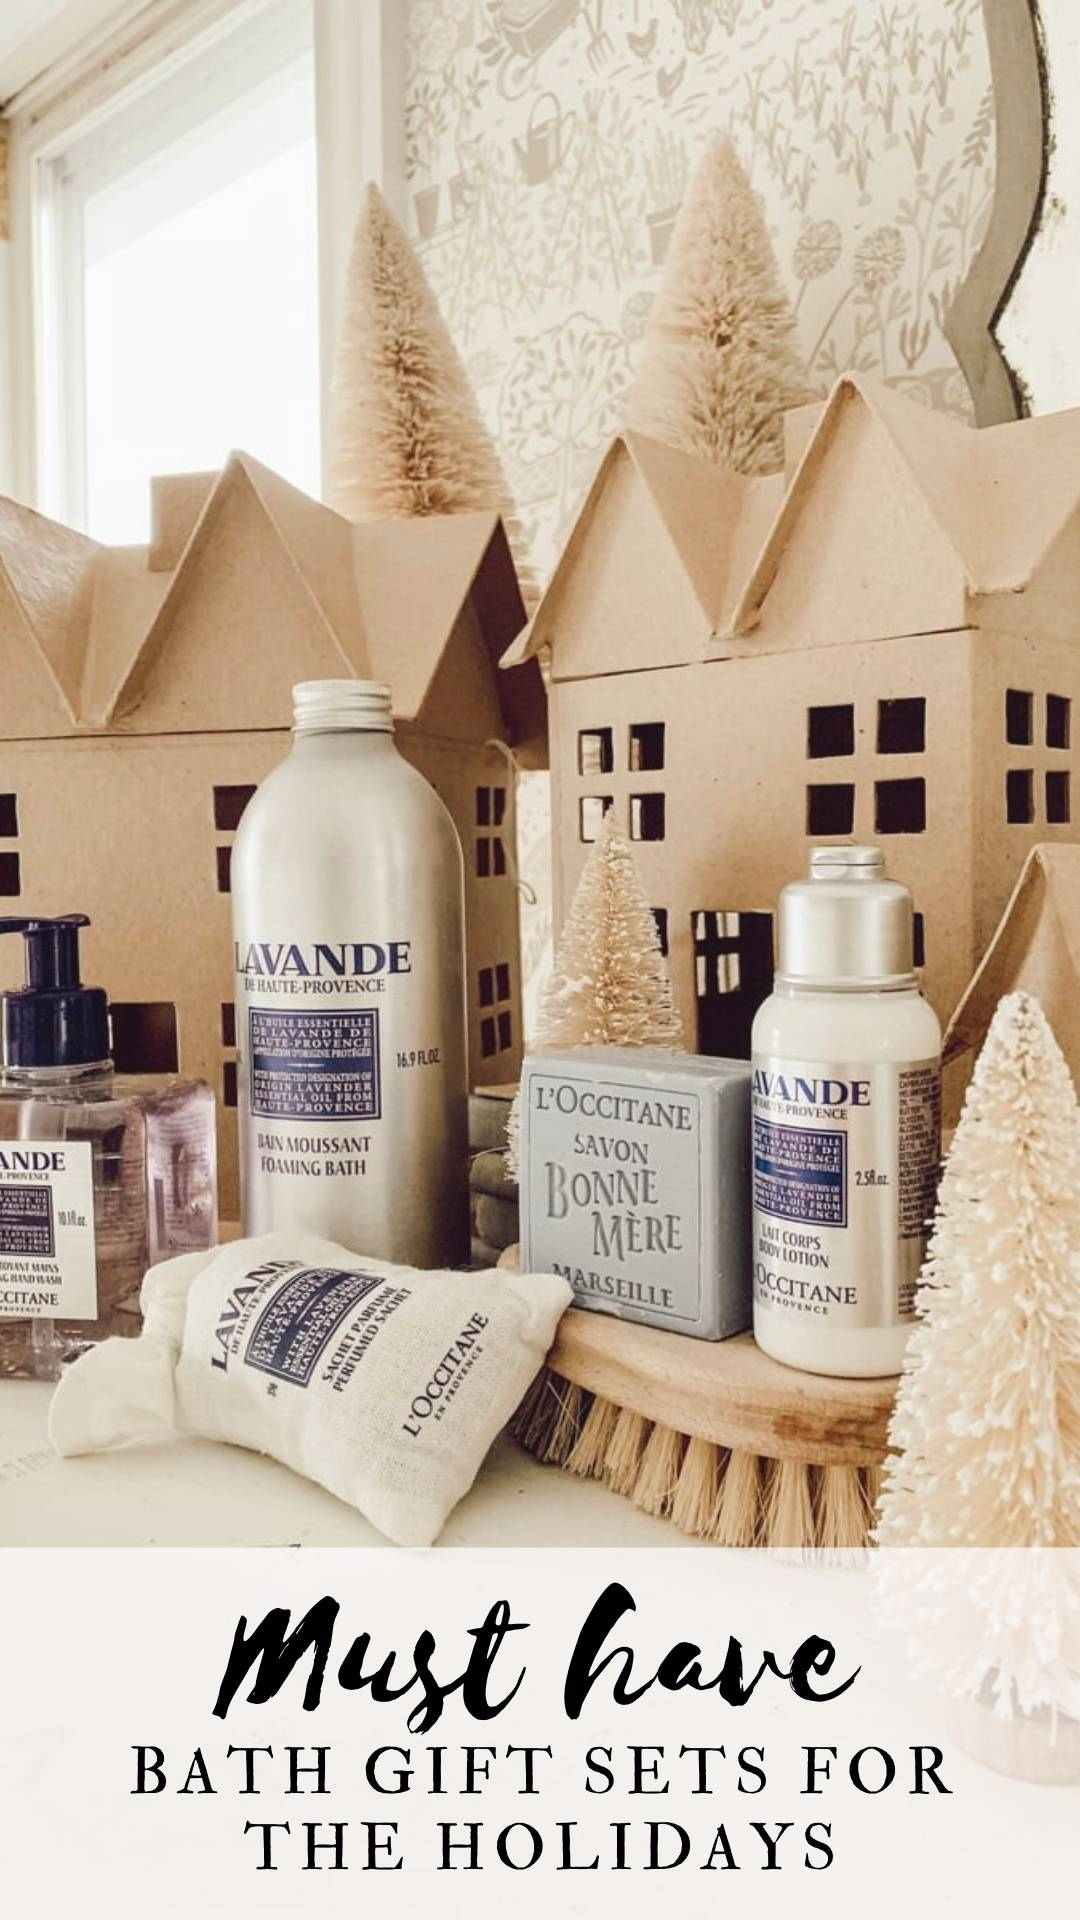 The Best Bath Gift Sets For The Holidays